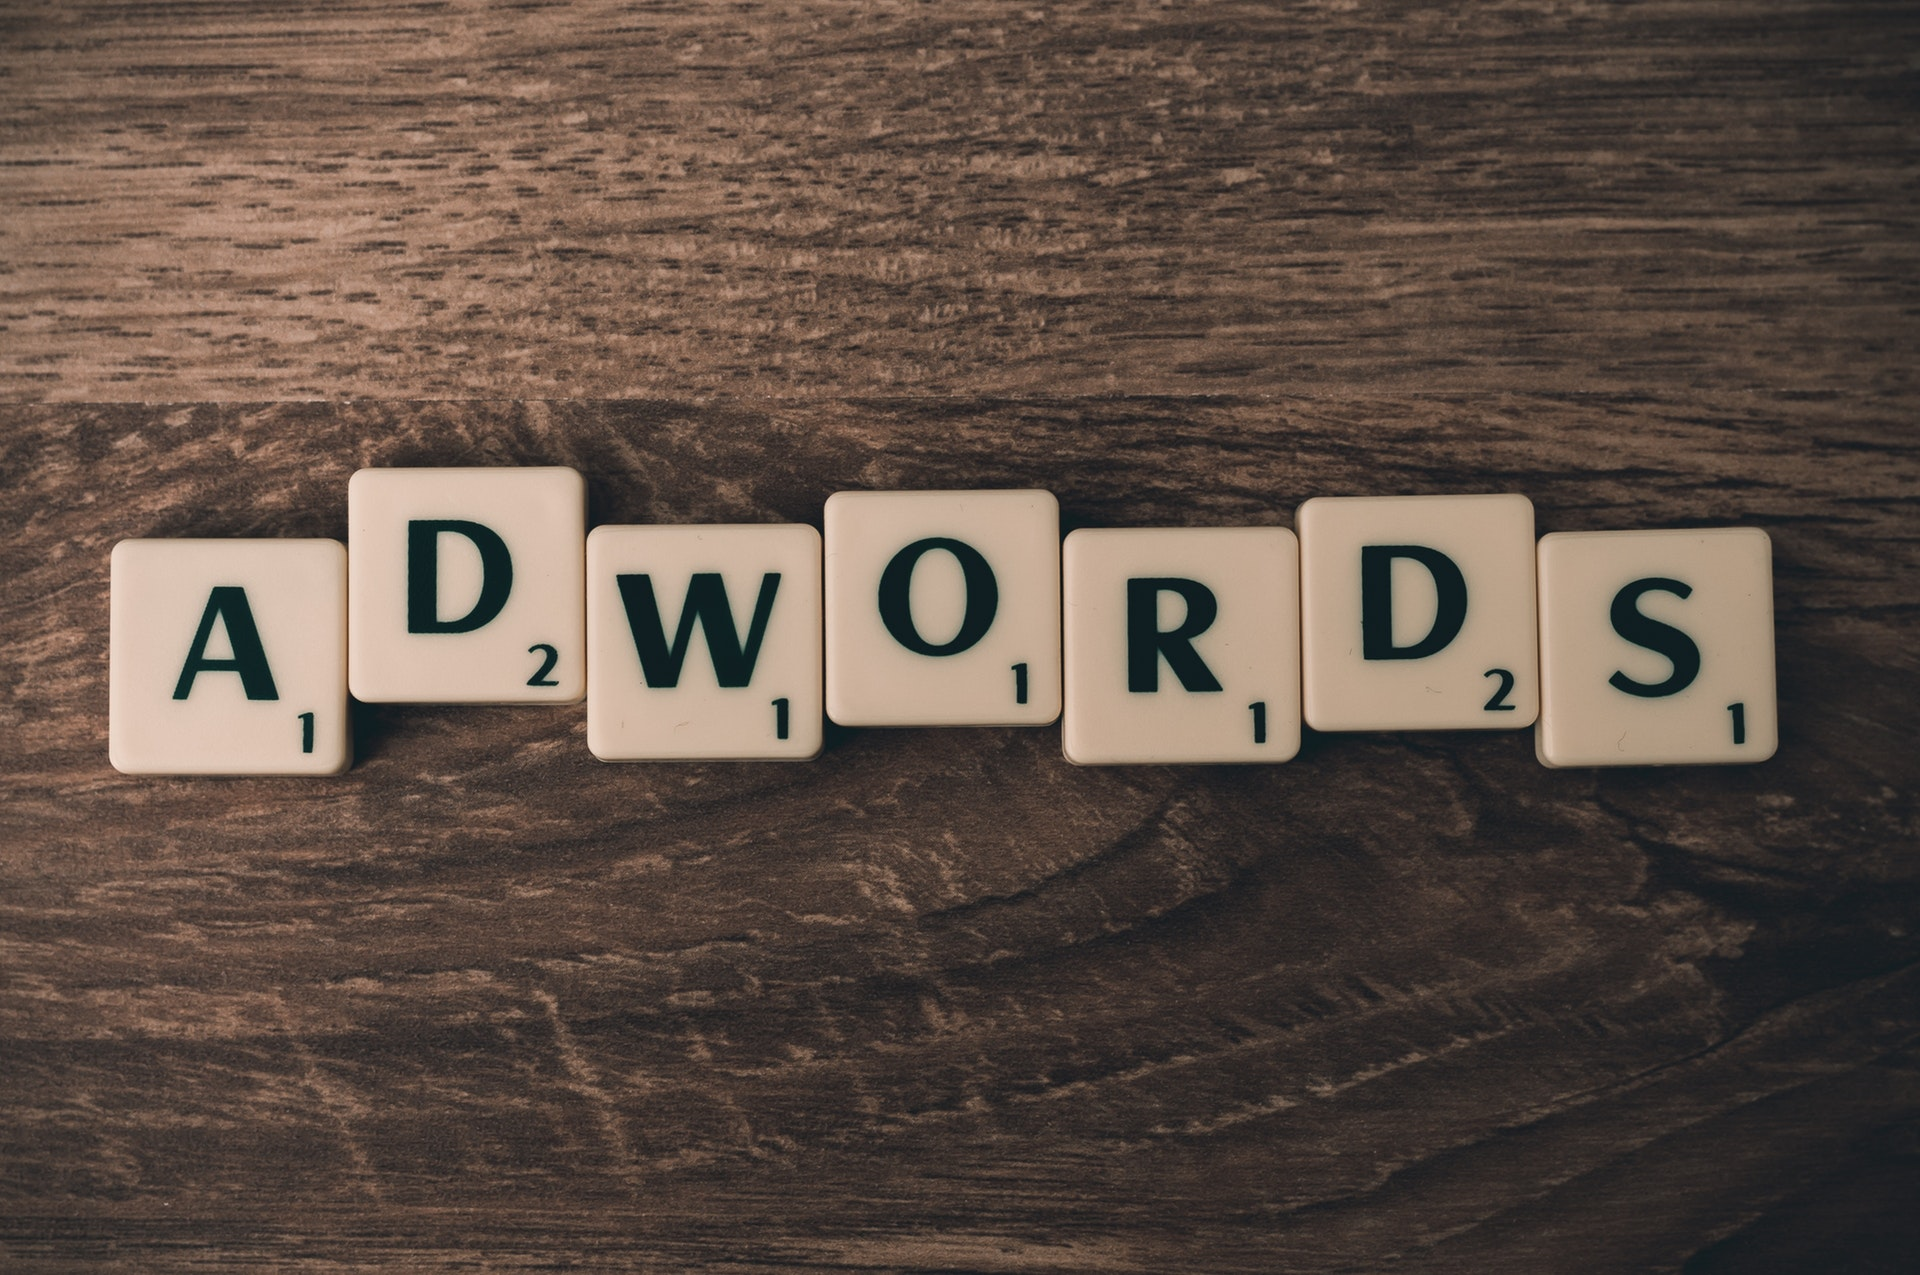 google adwords co to jest